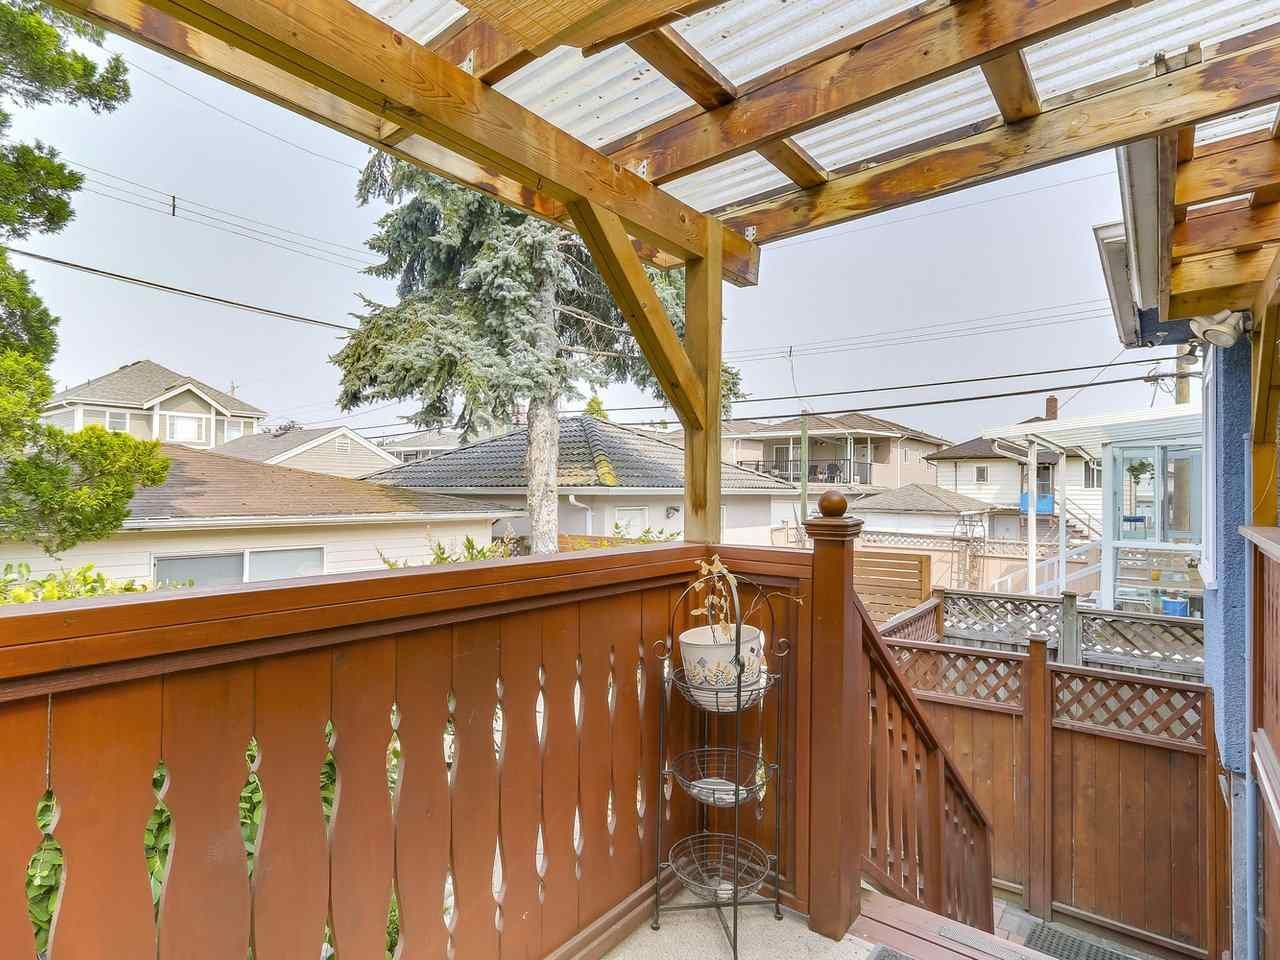 Photo 13: Photos: 165 E 55TH AVENUE in Vancouver: South Vancouver House for sale (Vancouver East)  : MLS®# R2297472